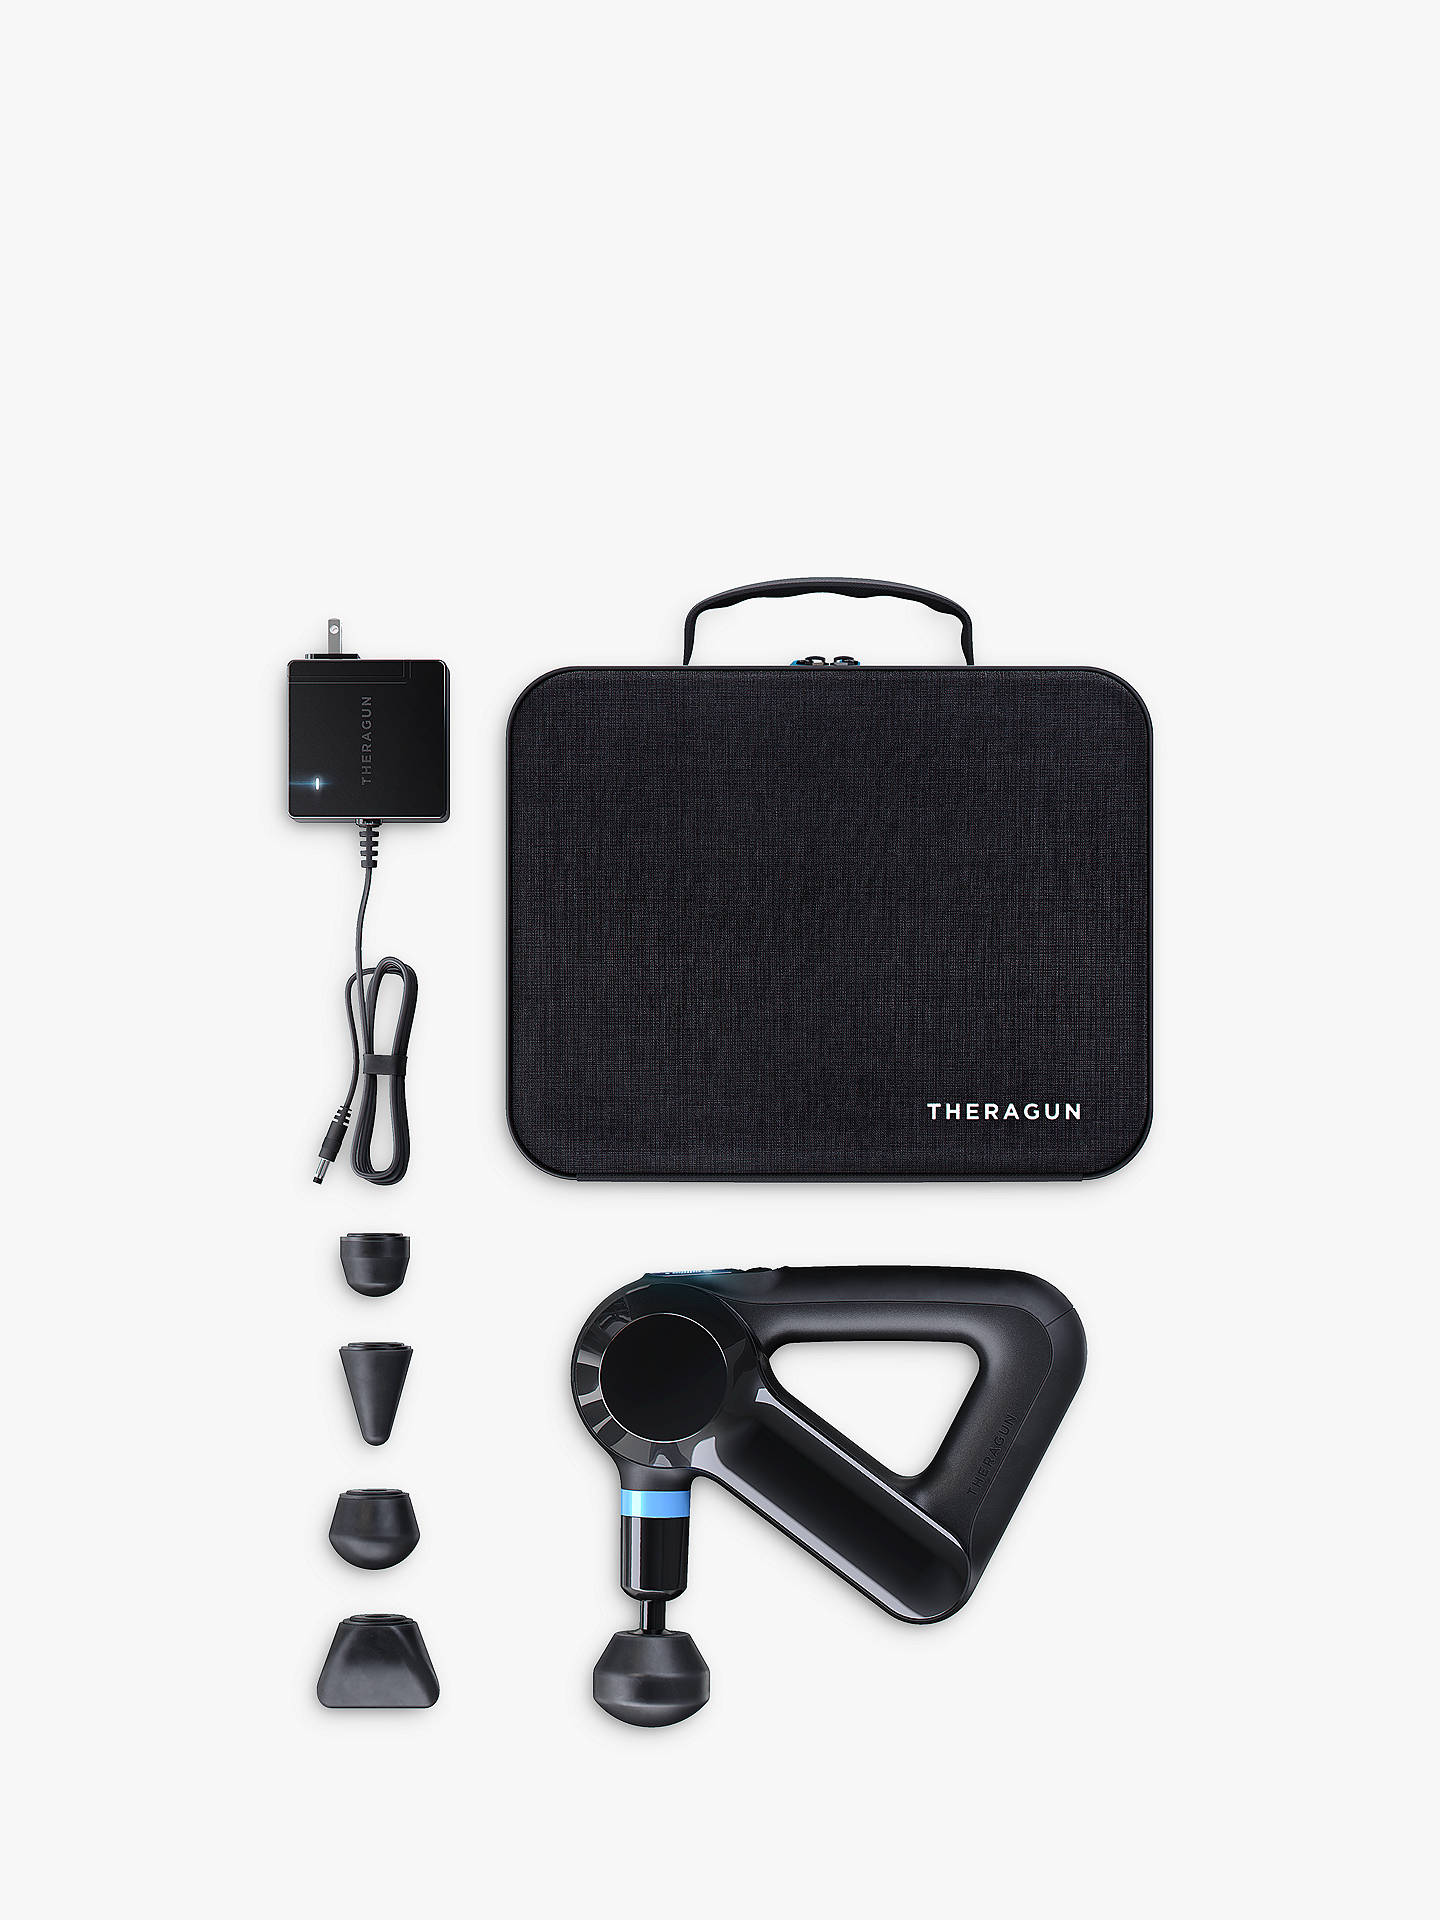 Buy Theragun Elite 4th Generation Percussive Therapy Massager, Black Online at johnlewis.com